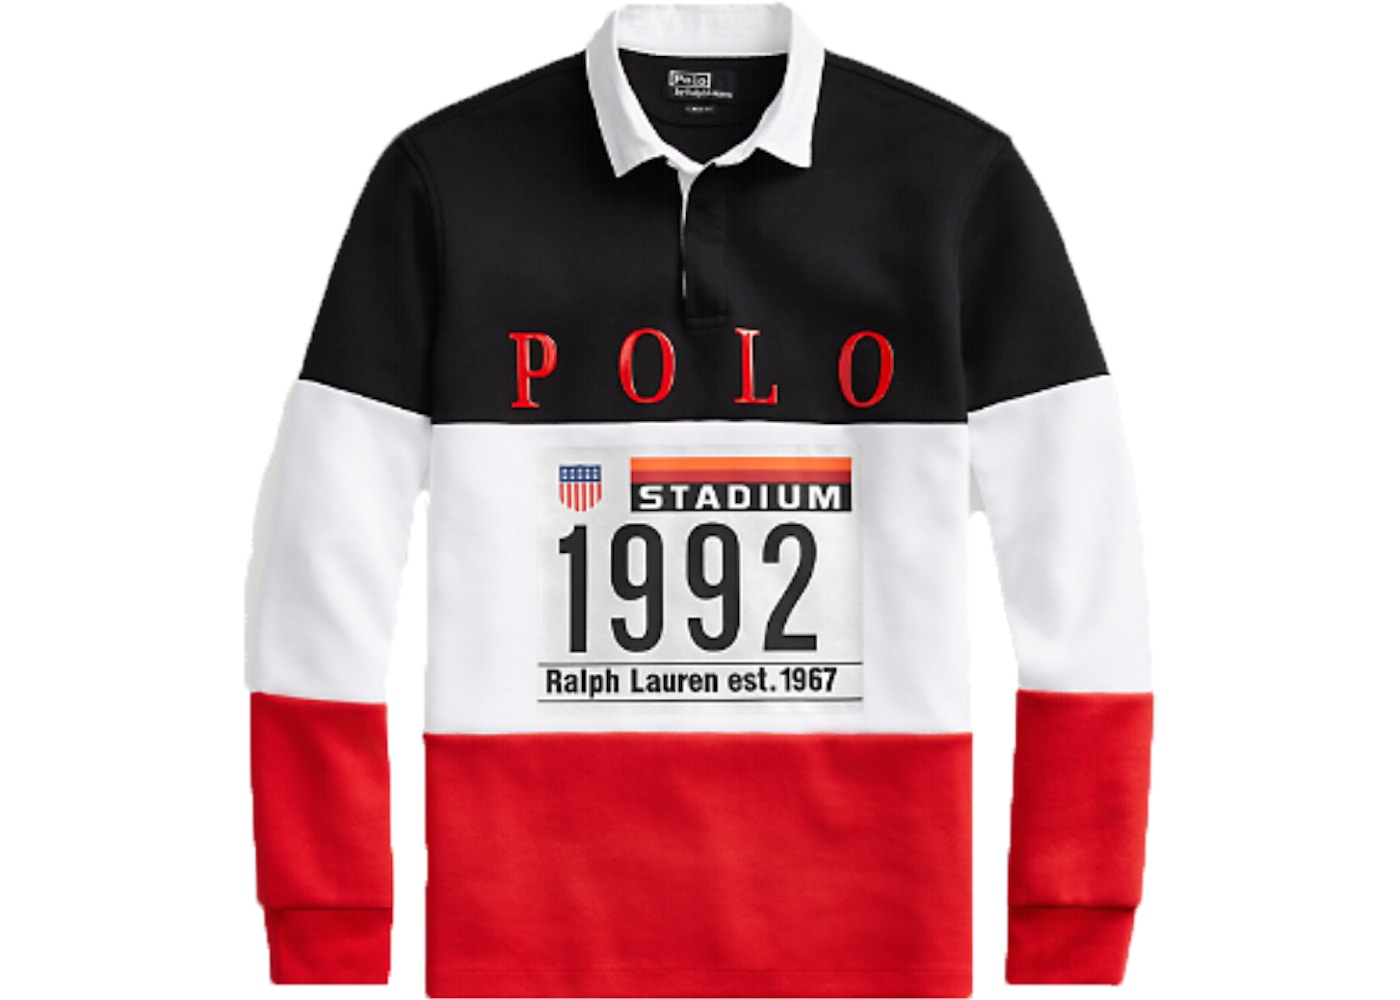 a4ce99b8c40 Polo Ralph Lauren Winter Stadium Rugby Shirt White Multi - FW18